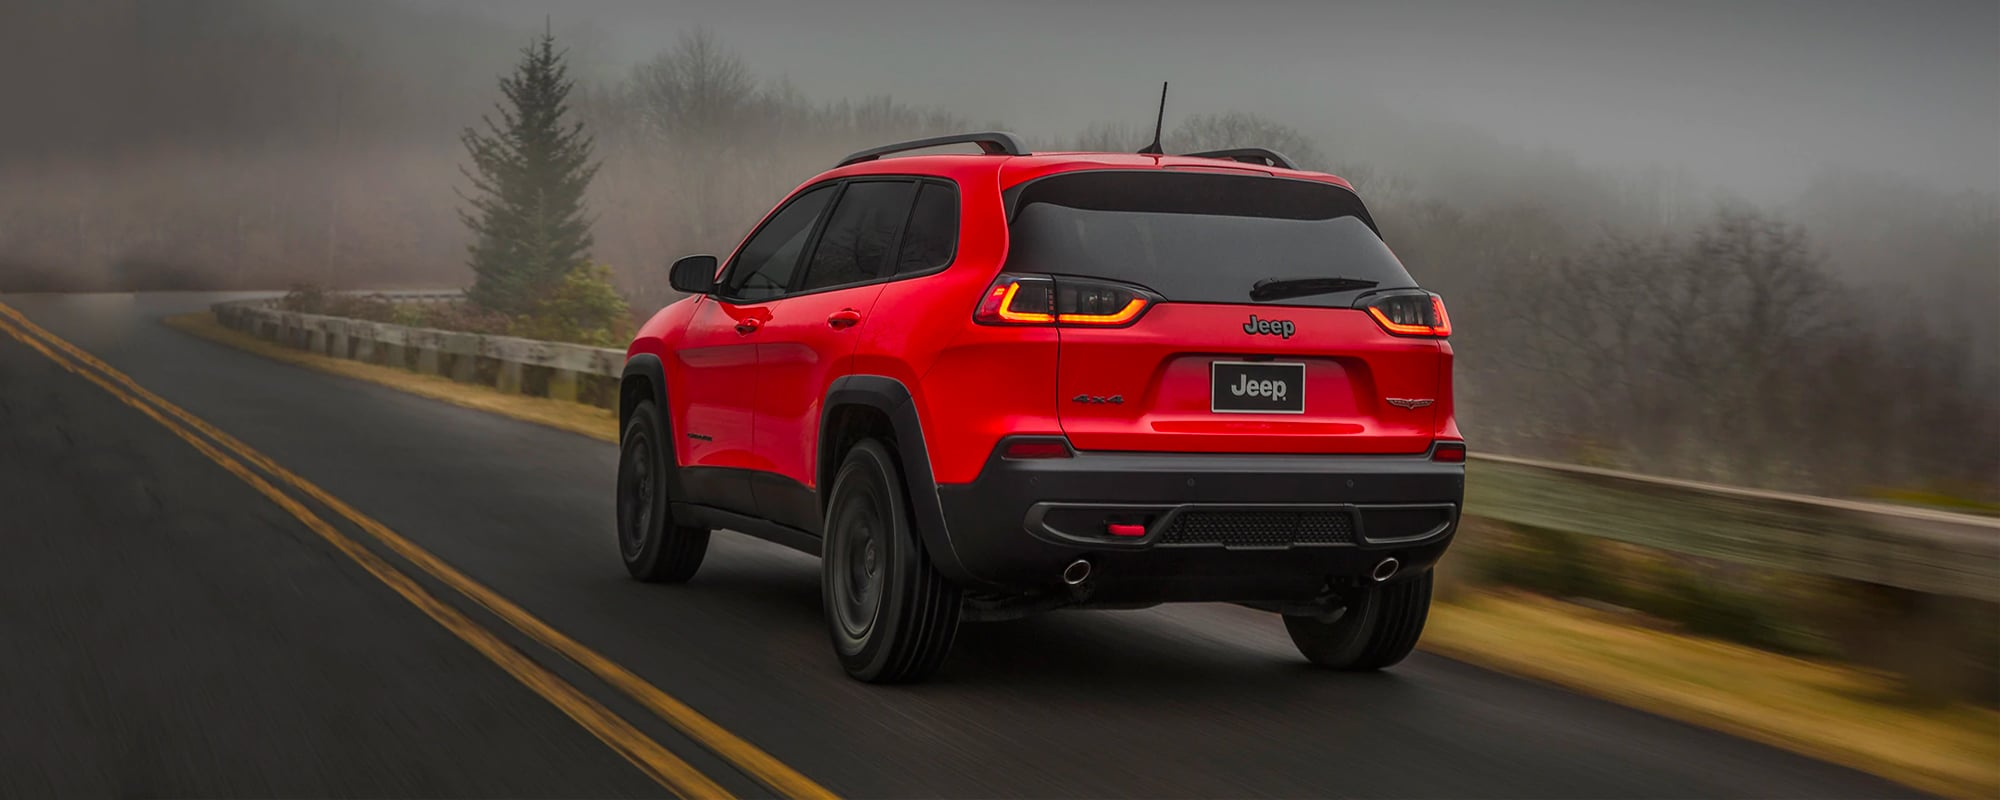 2019 Jeep Cherokee Overview